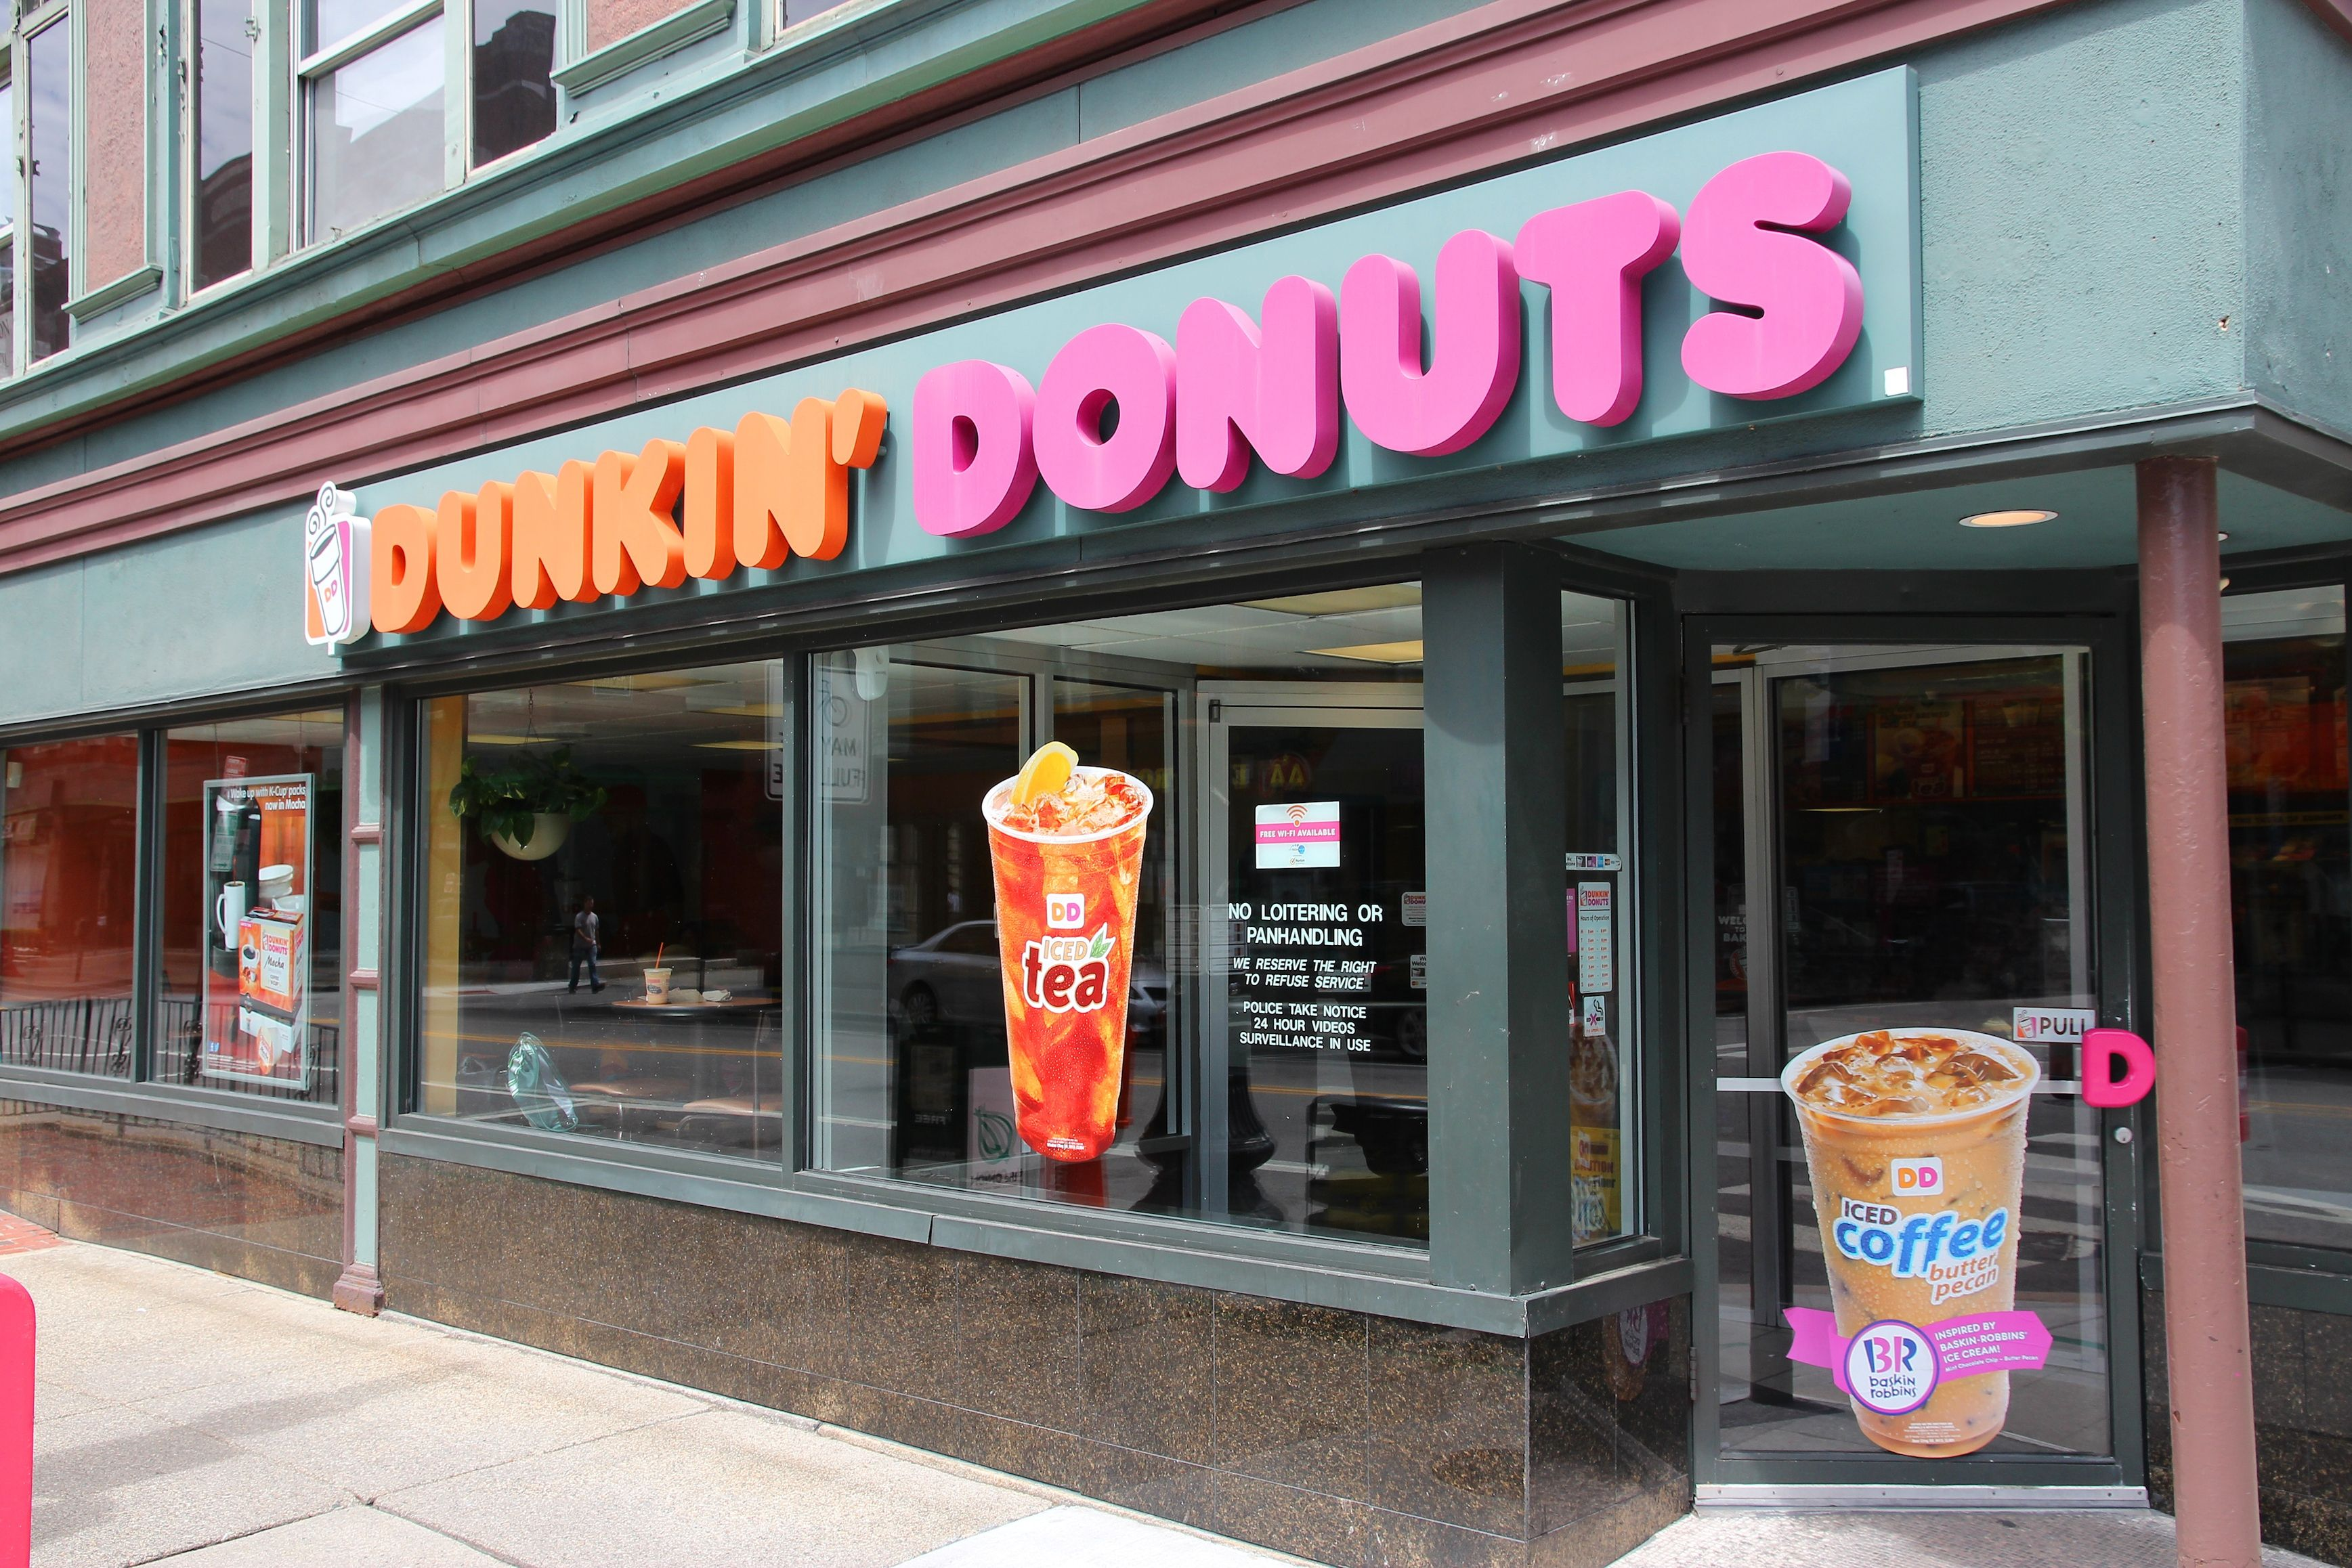 Its Official: Dunkin Donuts Is Now Just...Dunkin pics